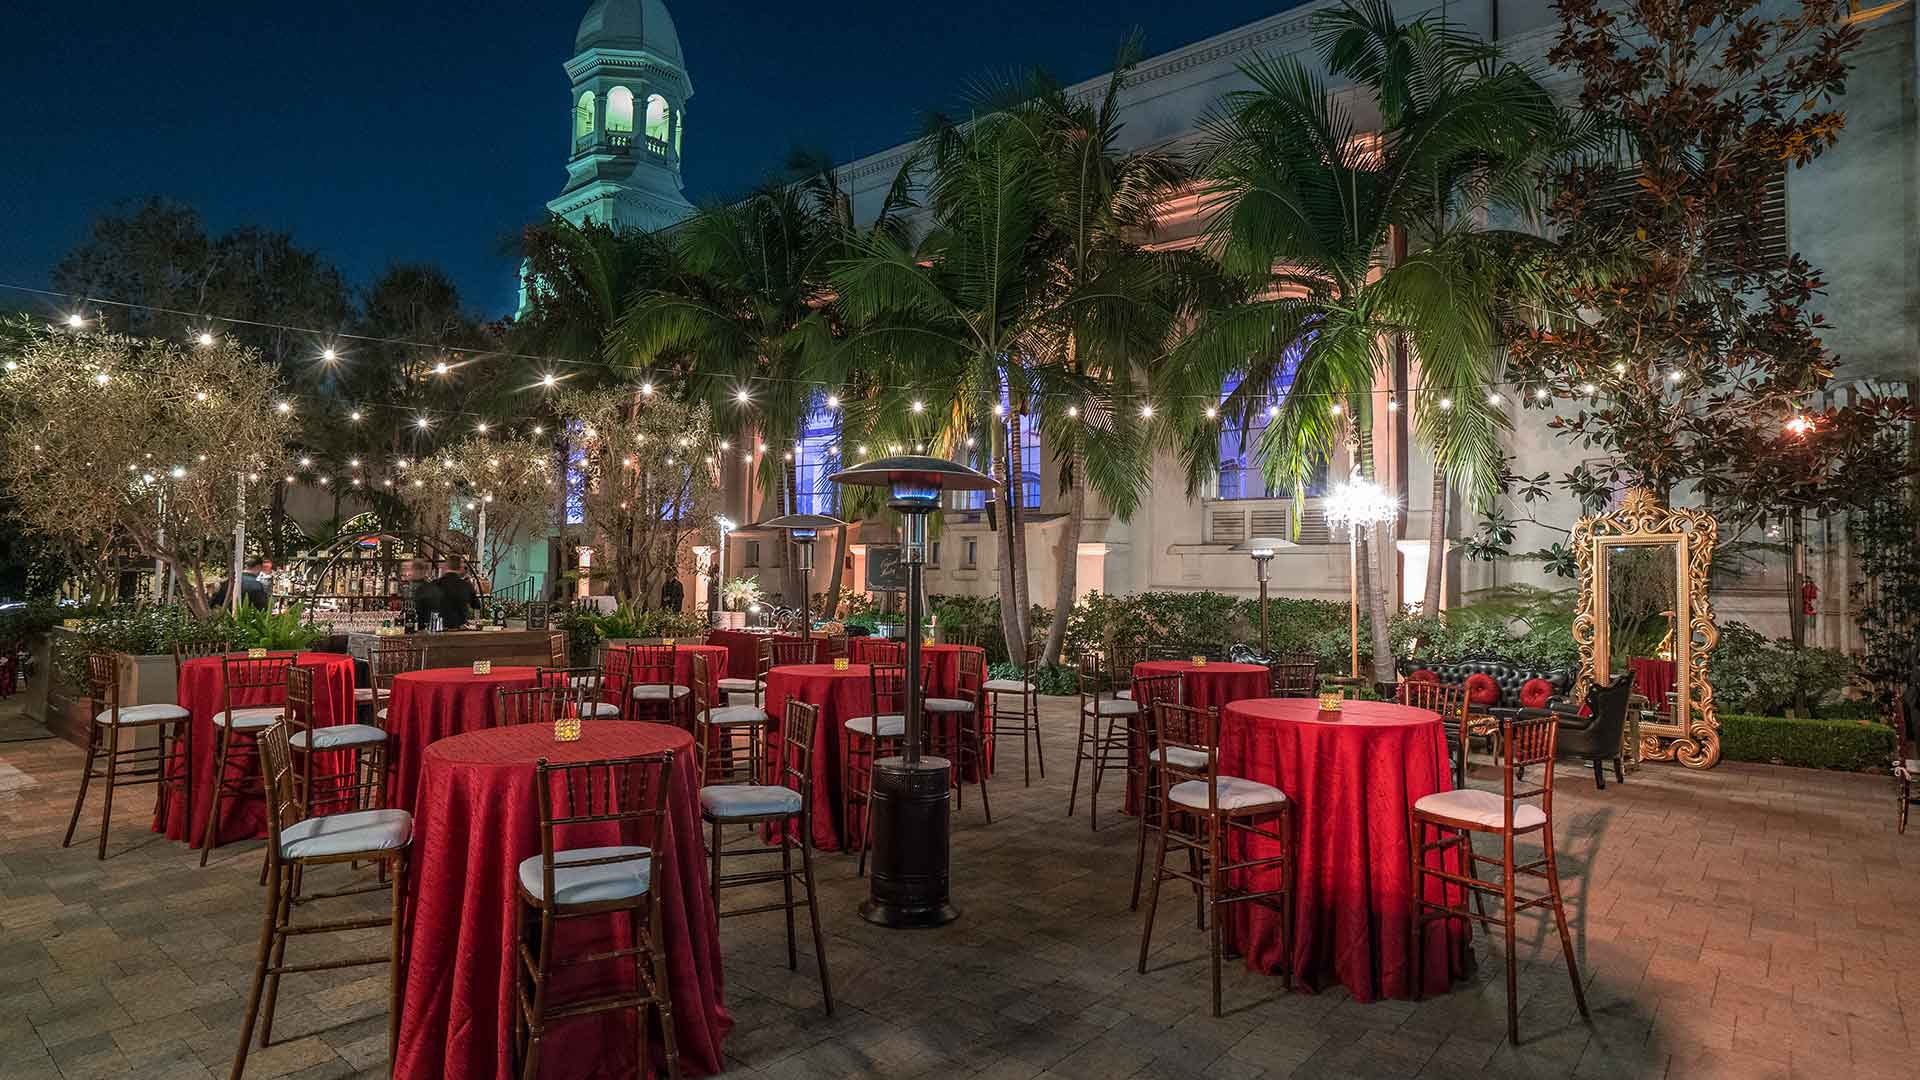 Red tables in courtyard at outdoor dining event